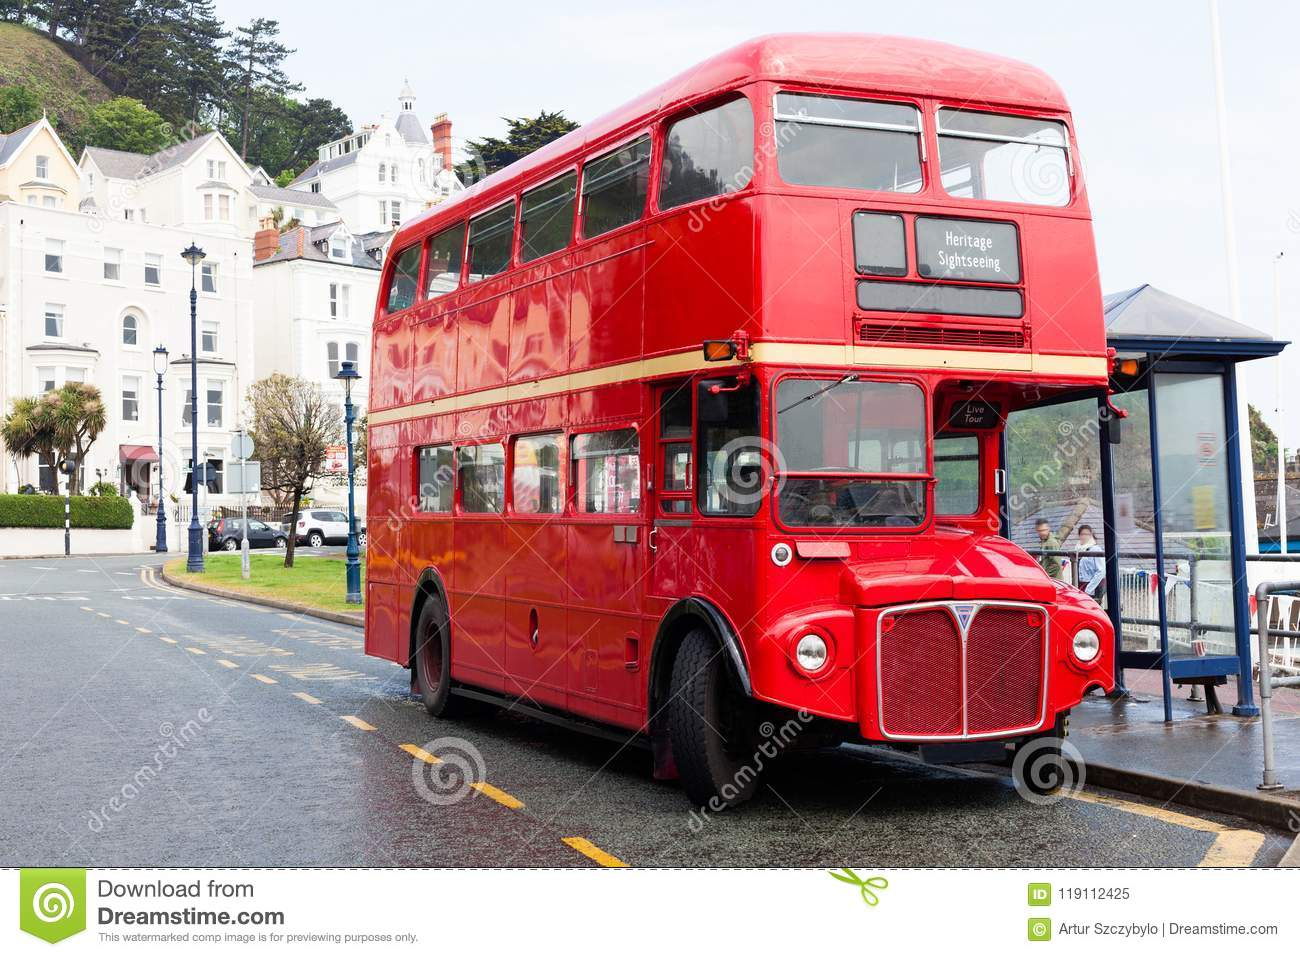 LLandudno, Wales, UK - MAY 27, 2018 Londons red double decker car parked on the road. buses on the stop. Tourism and touristic t